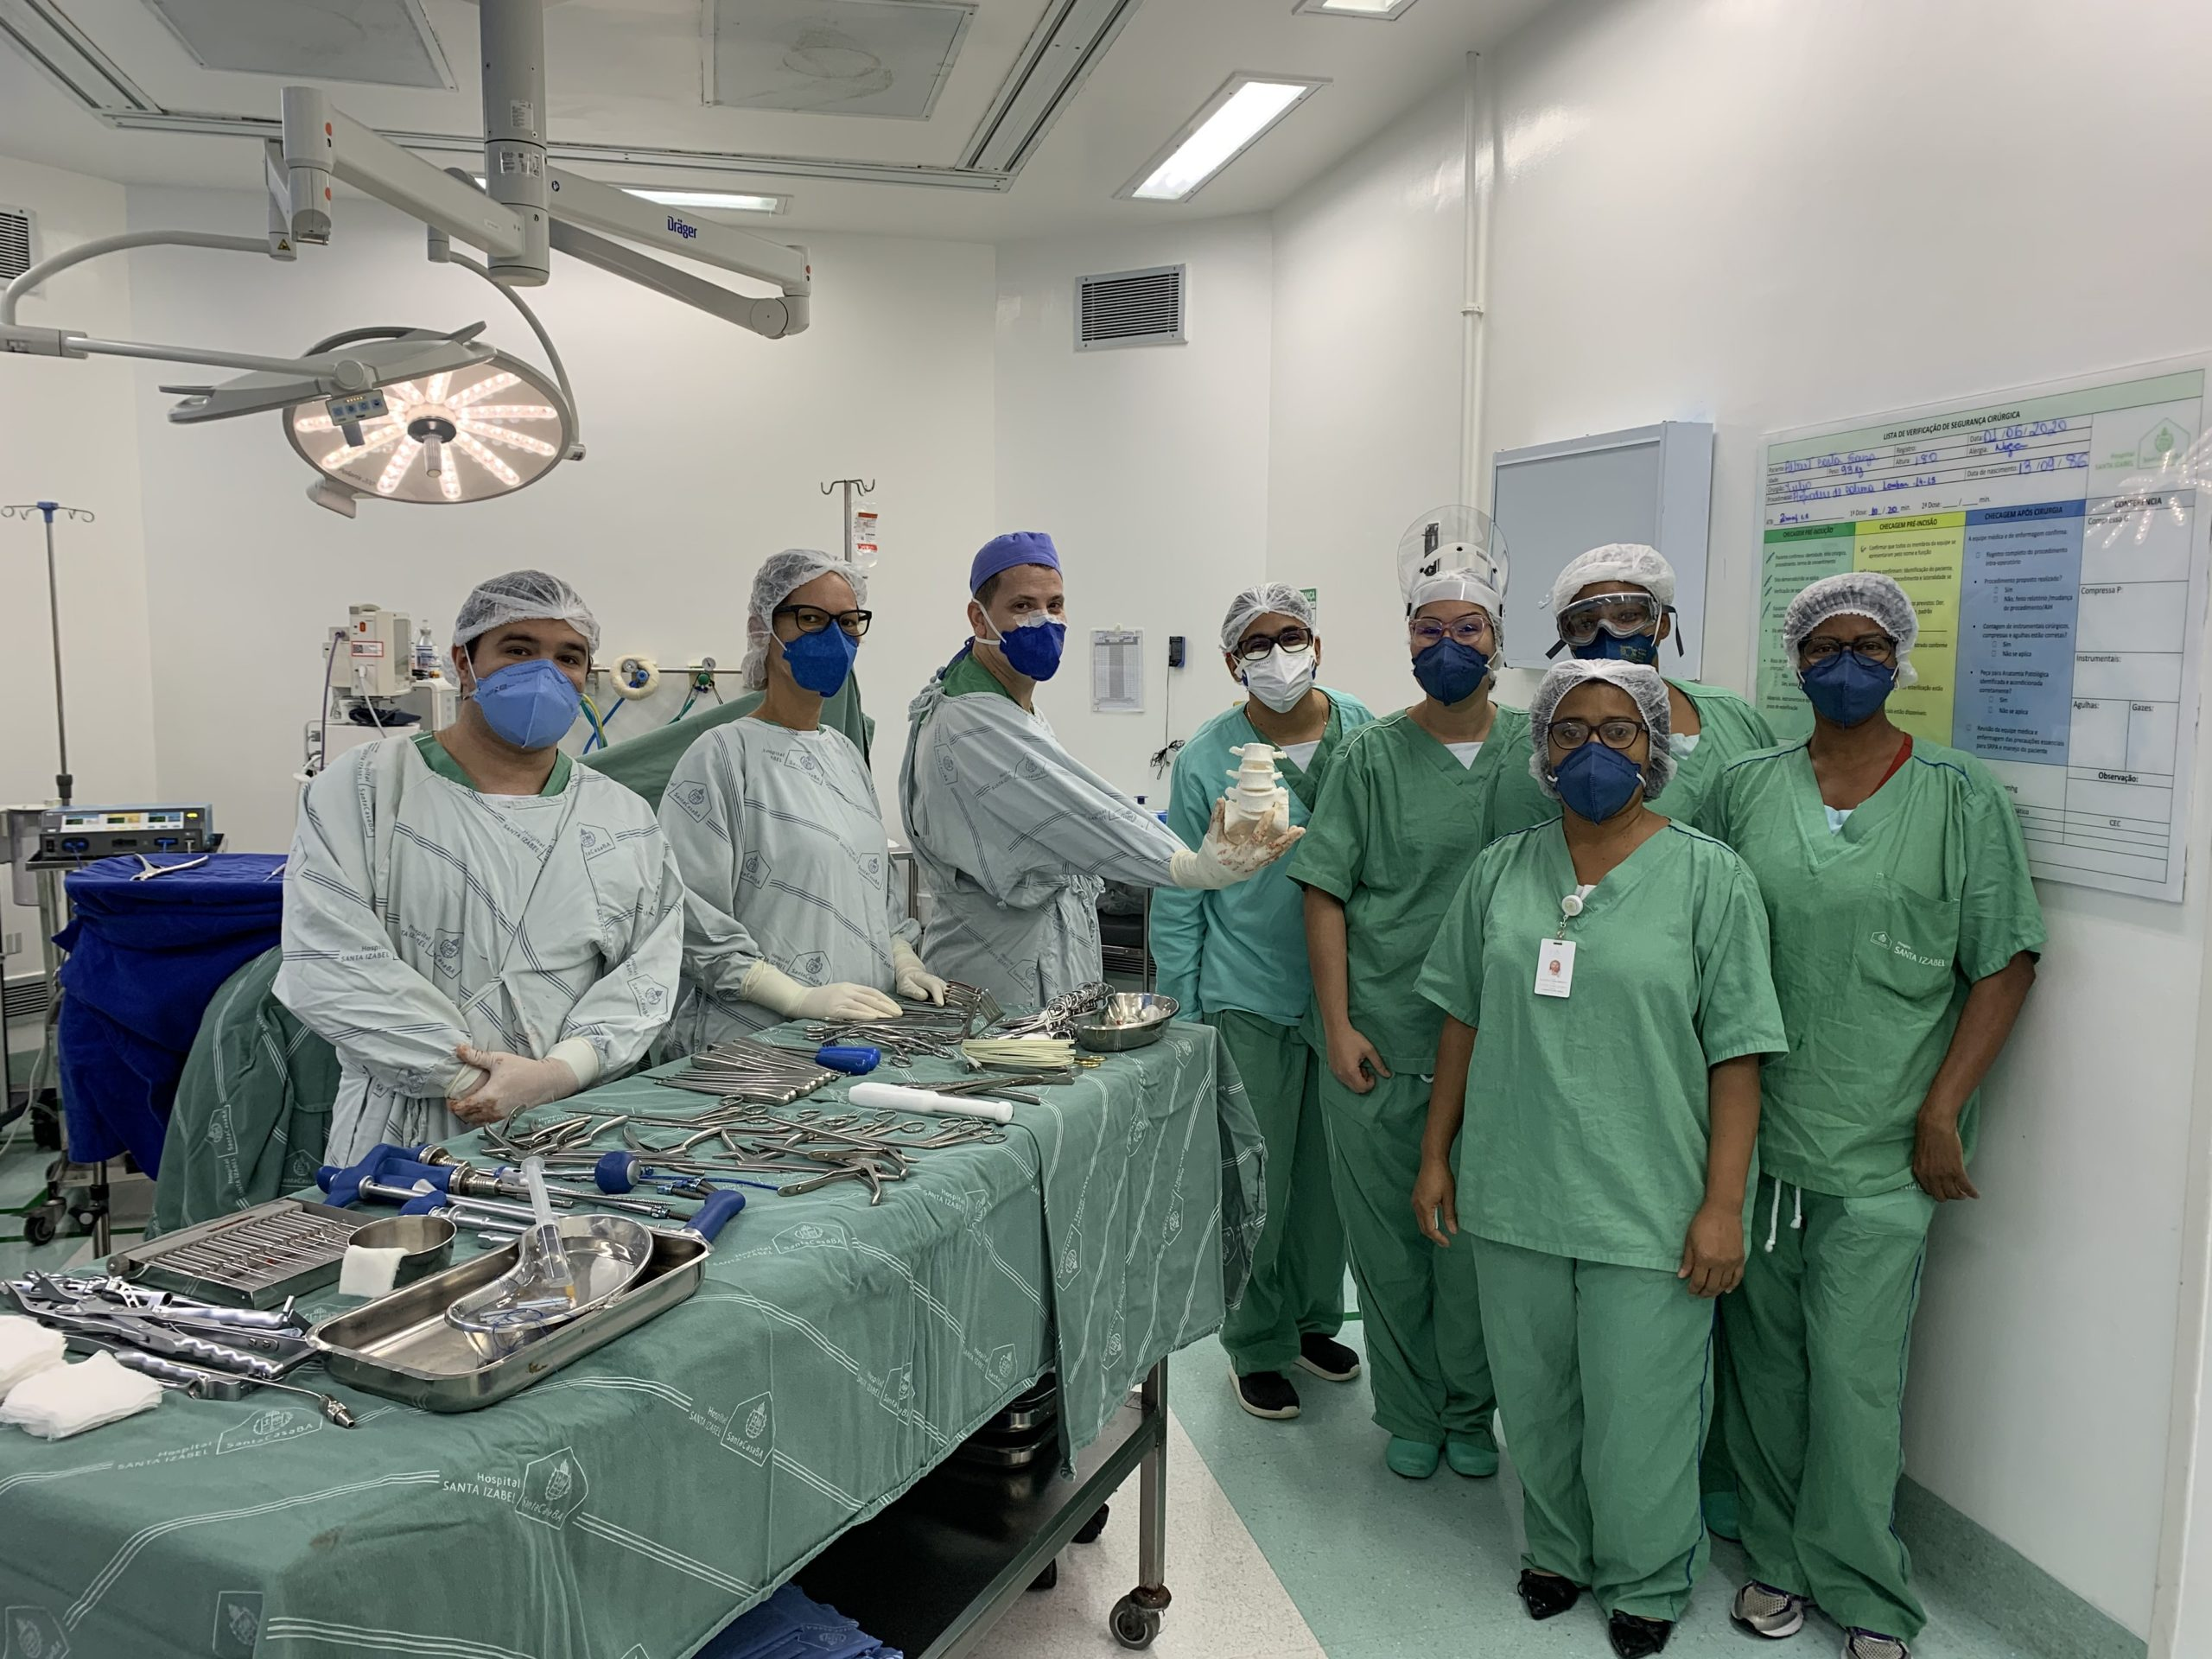 The surgical team